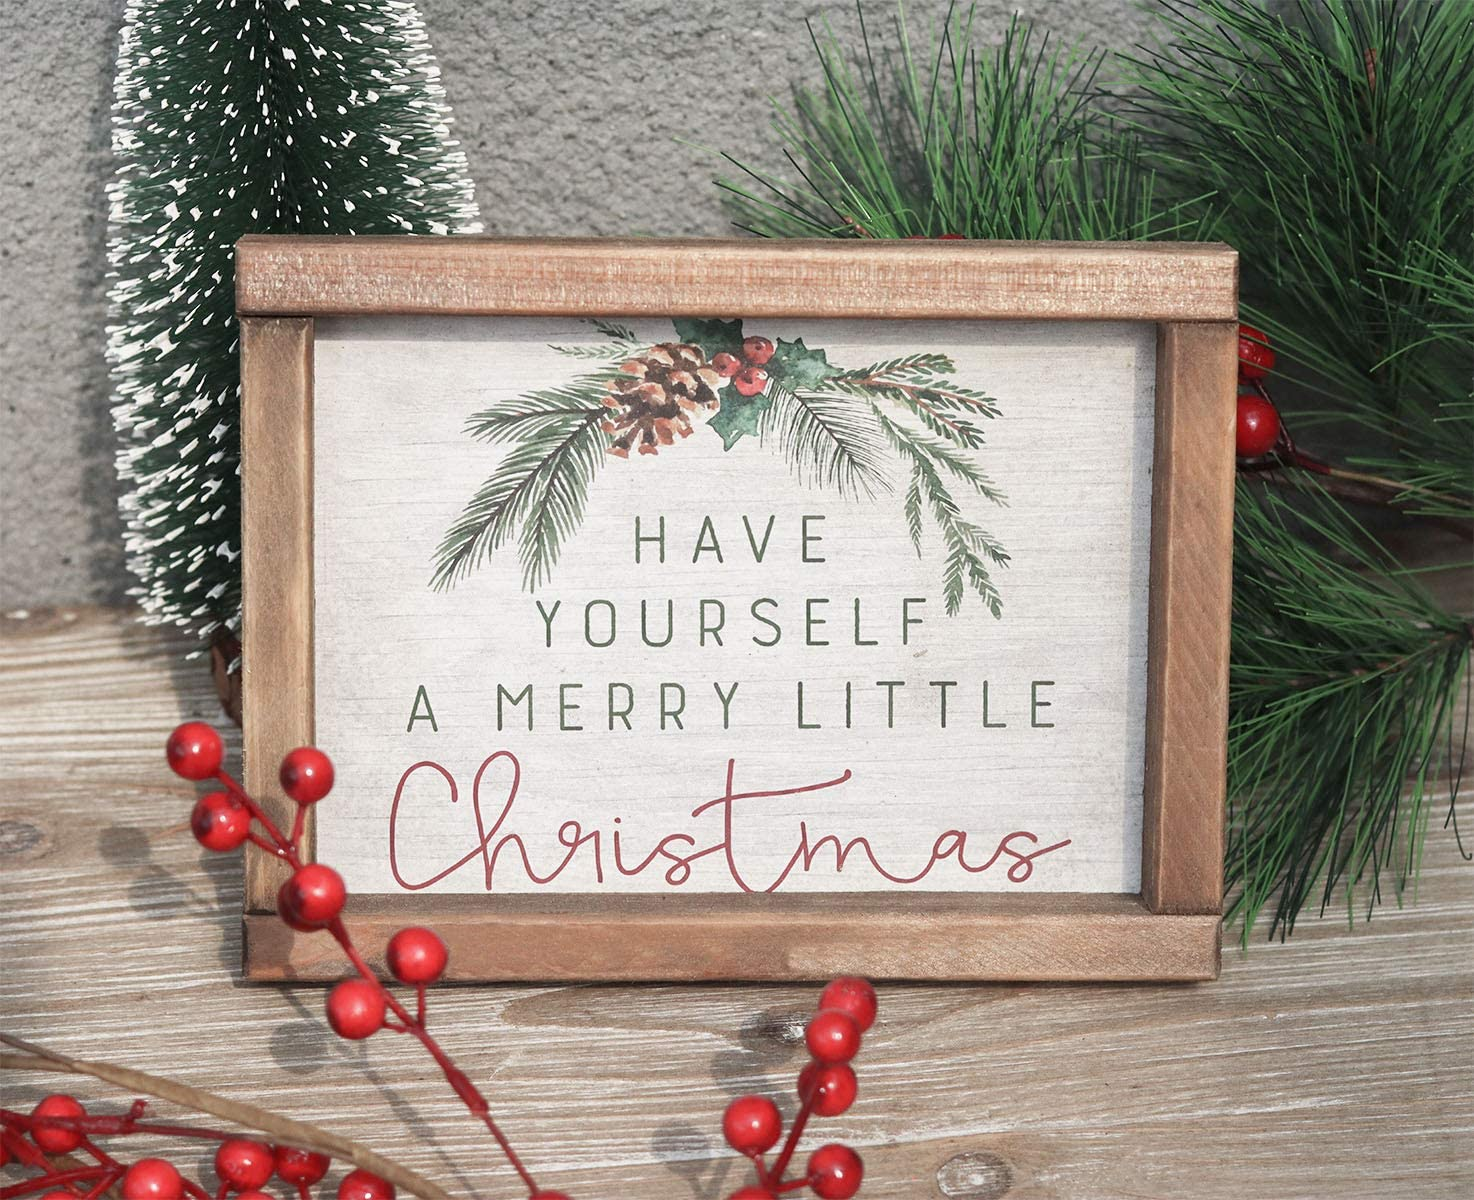 "Have Yourself a Merry Little Christmas Wood Frame Sign, Farmhouse Style Christmas Tabletop Decor, 8"" W x 6"" H"